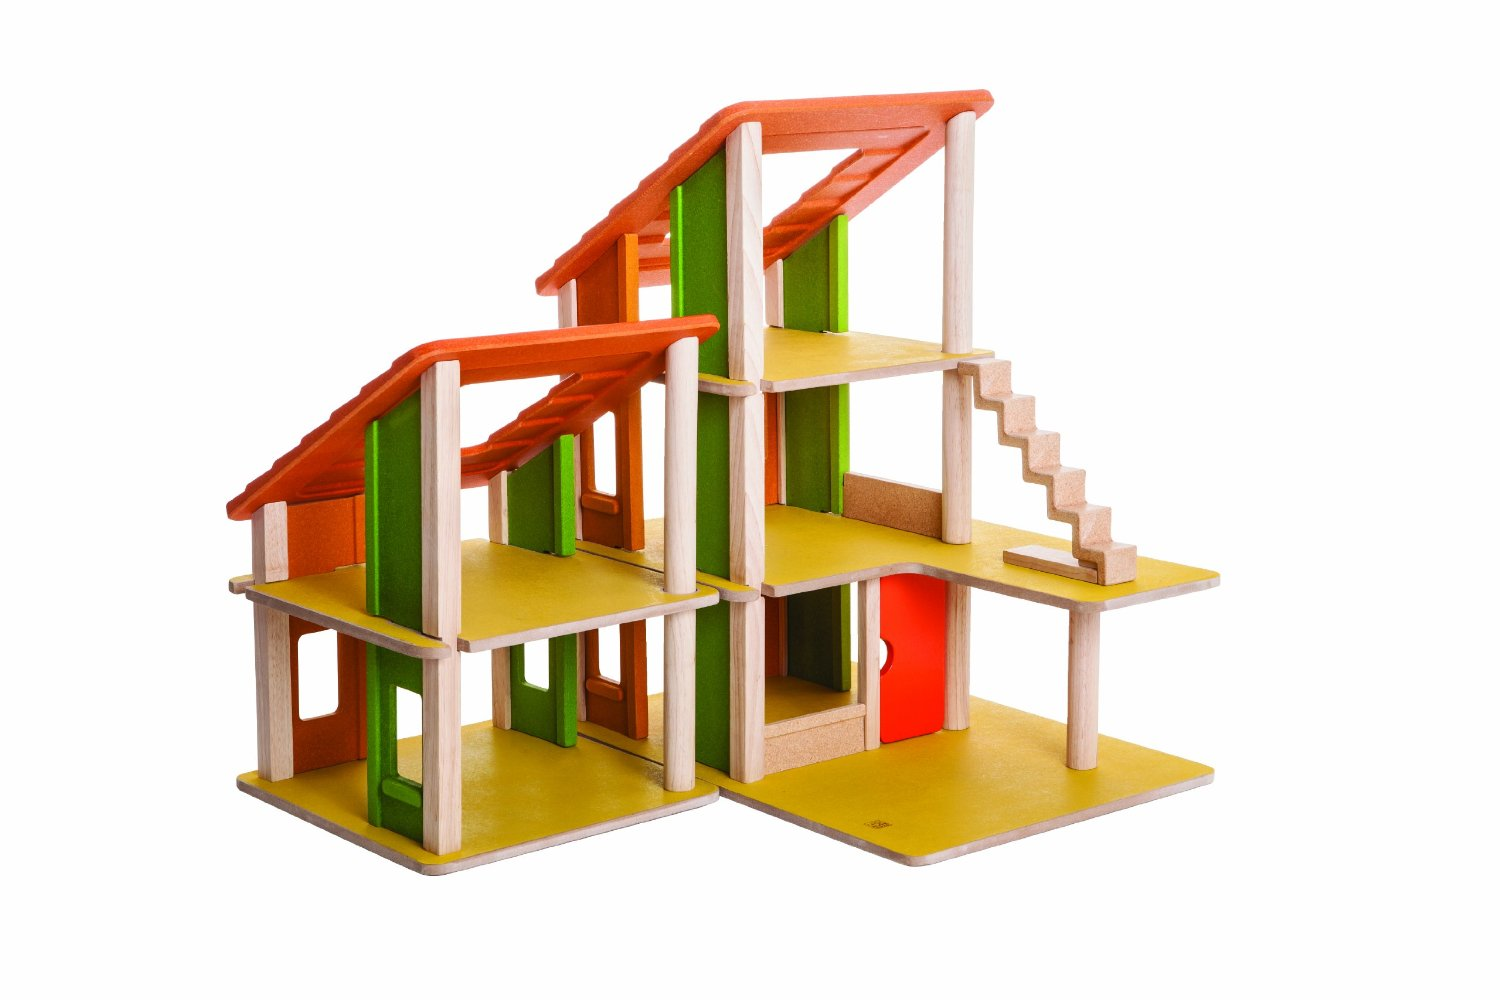 Plan Toys Chalet Dollhouse Without Furniture - Free Shipping!